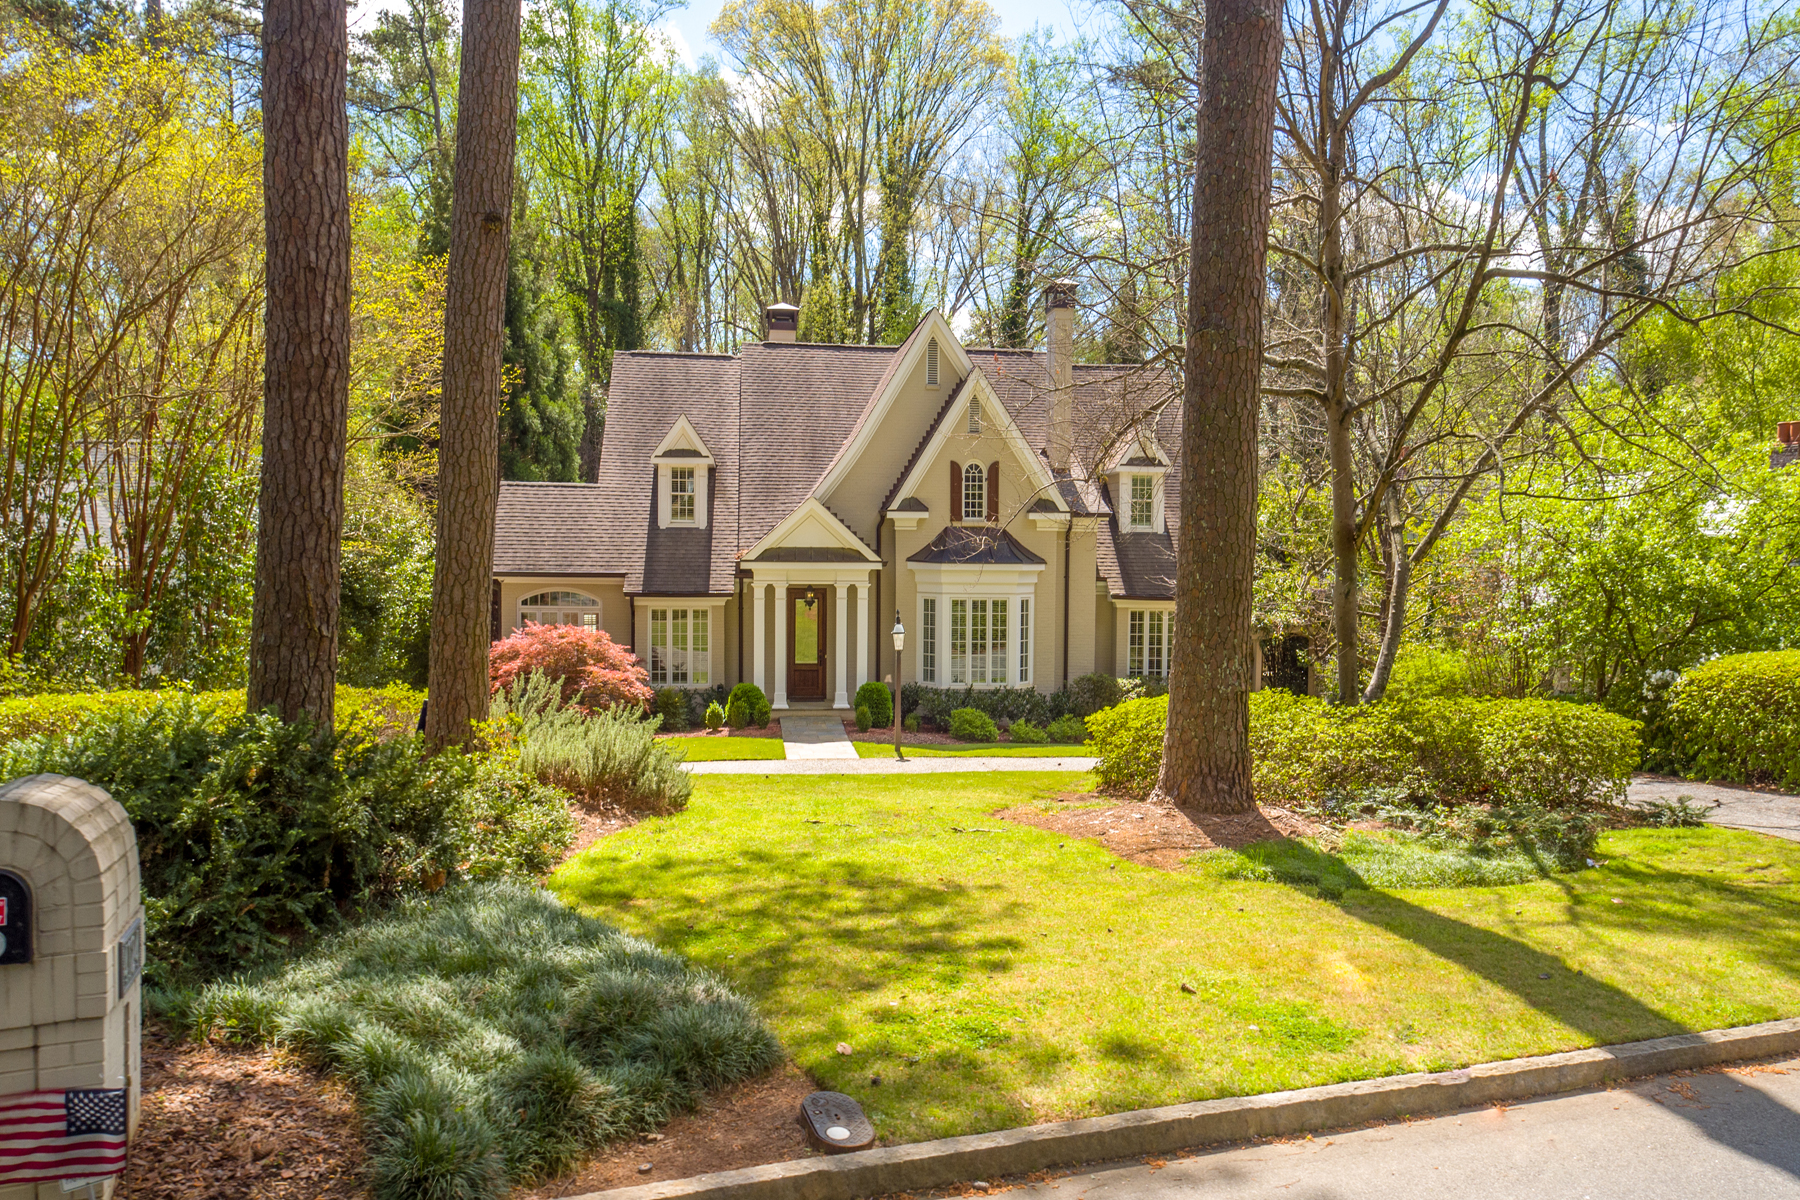 Tek Ailelik Ev için Satış at Gorgeous Home In Ideal Brookhaven Location 4124 Club Drive Brookhaven, Atlanta, Georgia, 30319 Amerika Birleşik Devletleri